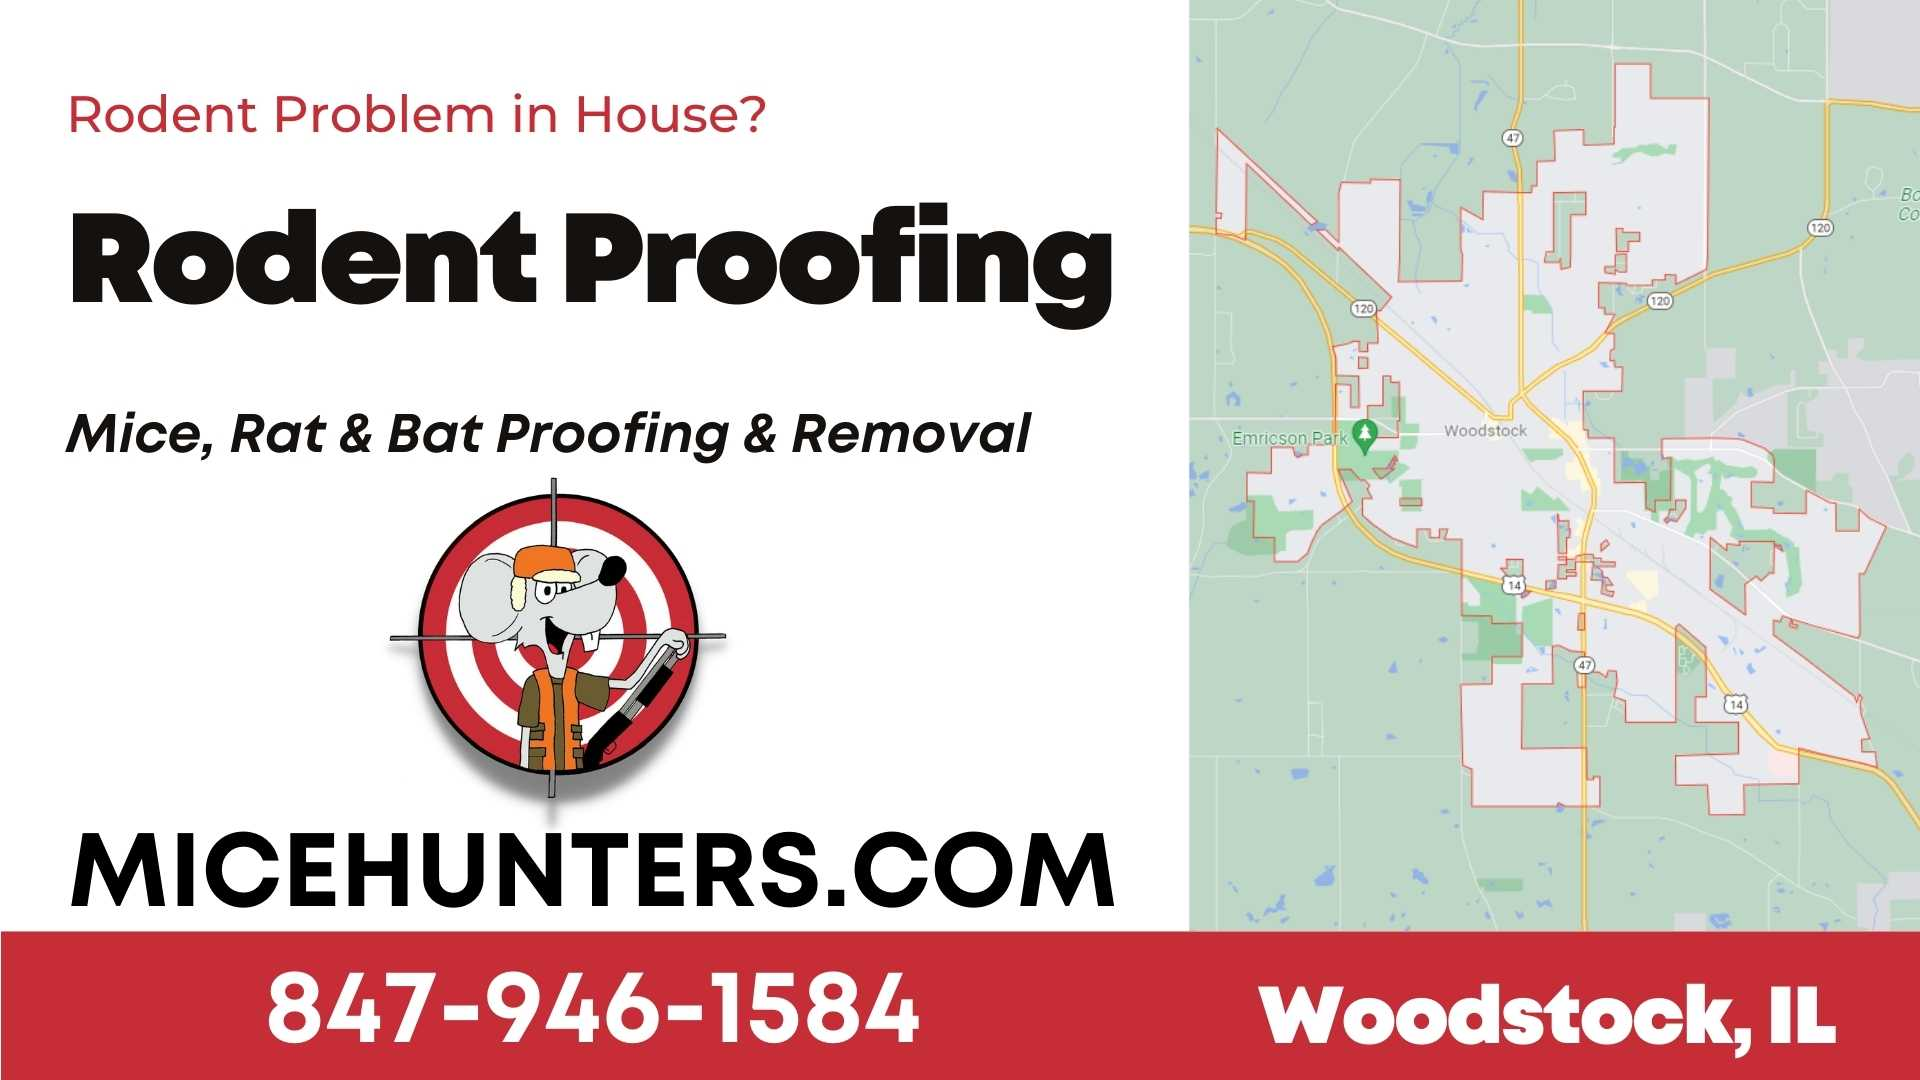 Woodstock Rodent and Mice Proofing Exterminator near me